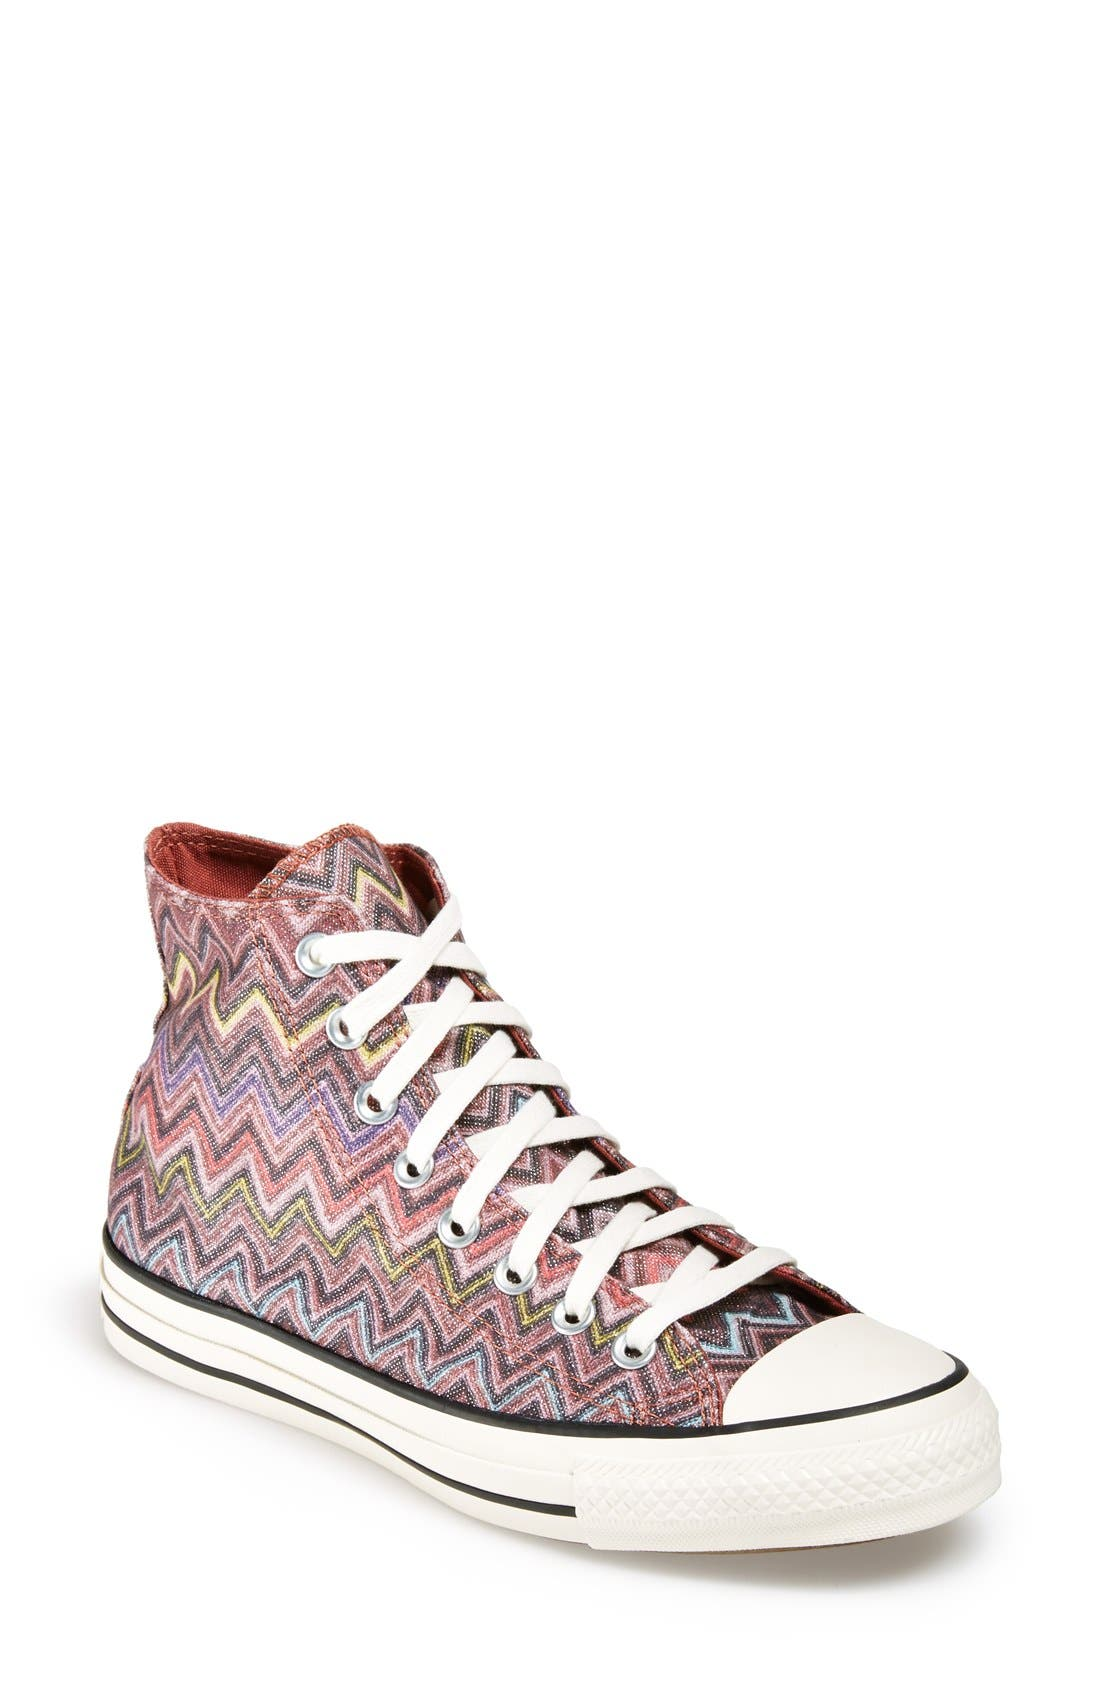 Main Image - Converse x Missoni Chuck Taylor® All Star® High Top Sneaker (Women)